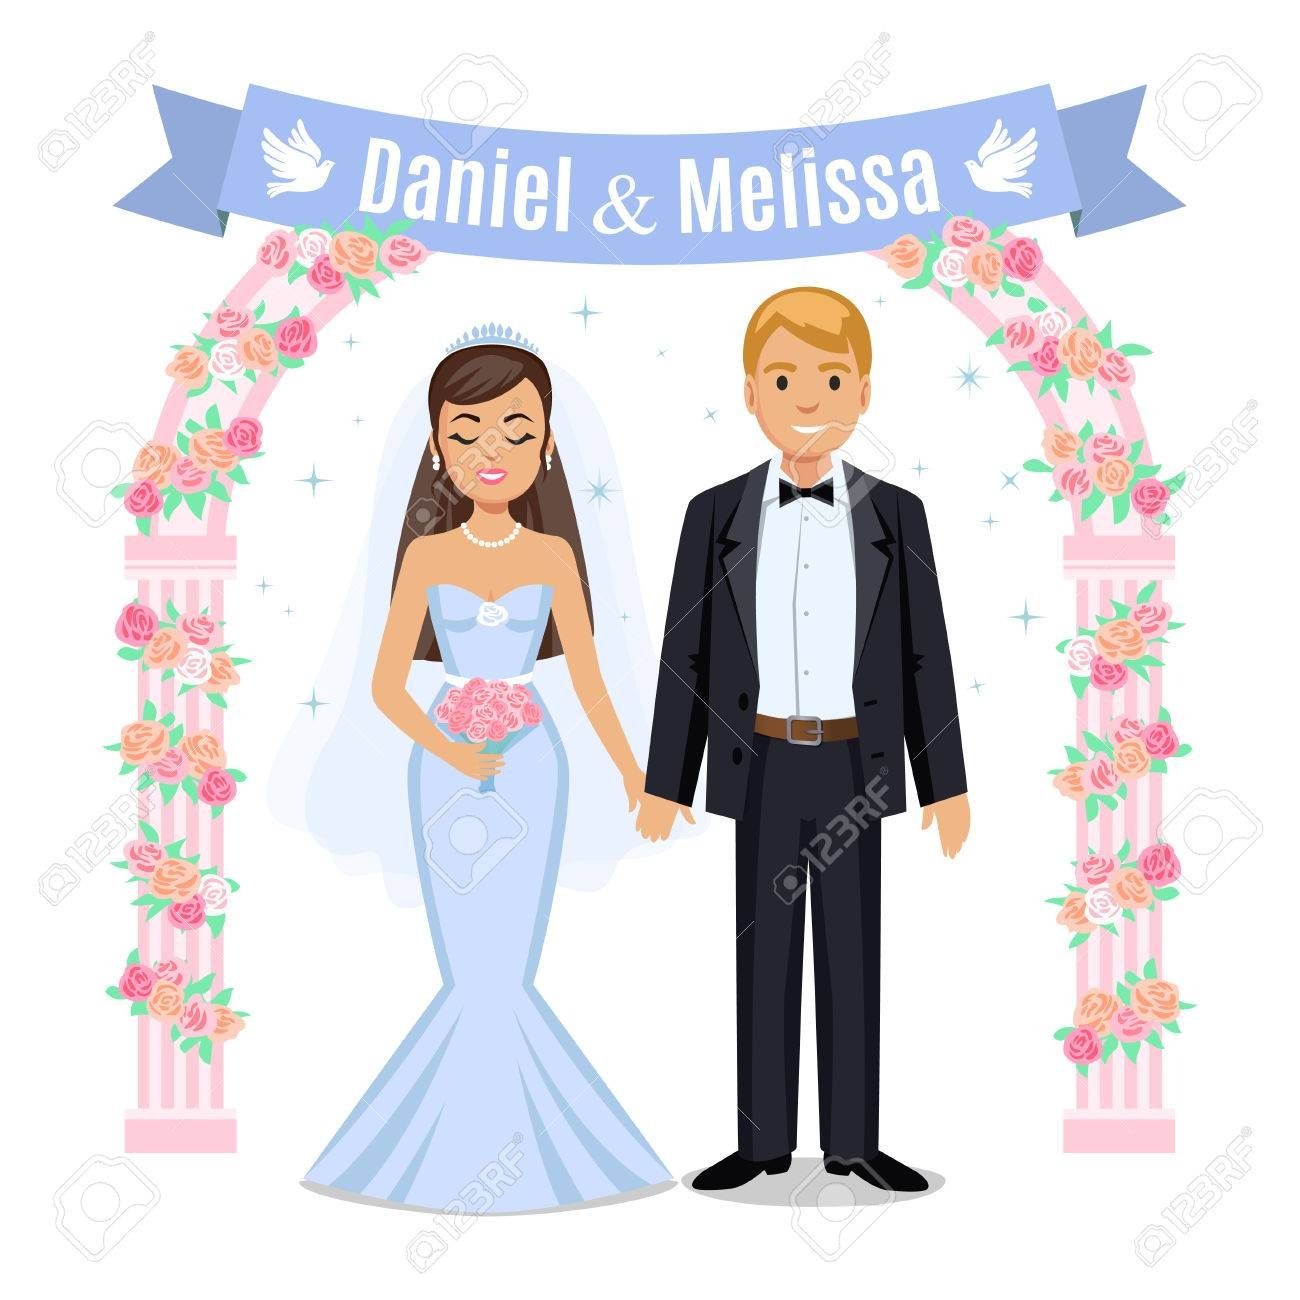 Happy Wedding Couple Wedding Couple And Floral Frame Bride And Groom On Their Wedding Day Wedding Couple Vector Illustration Isolated On White Background Cu Bride And Groom Cartoon Wedding Couples Blue